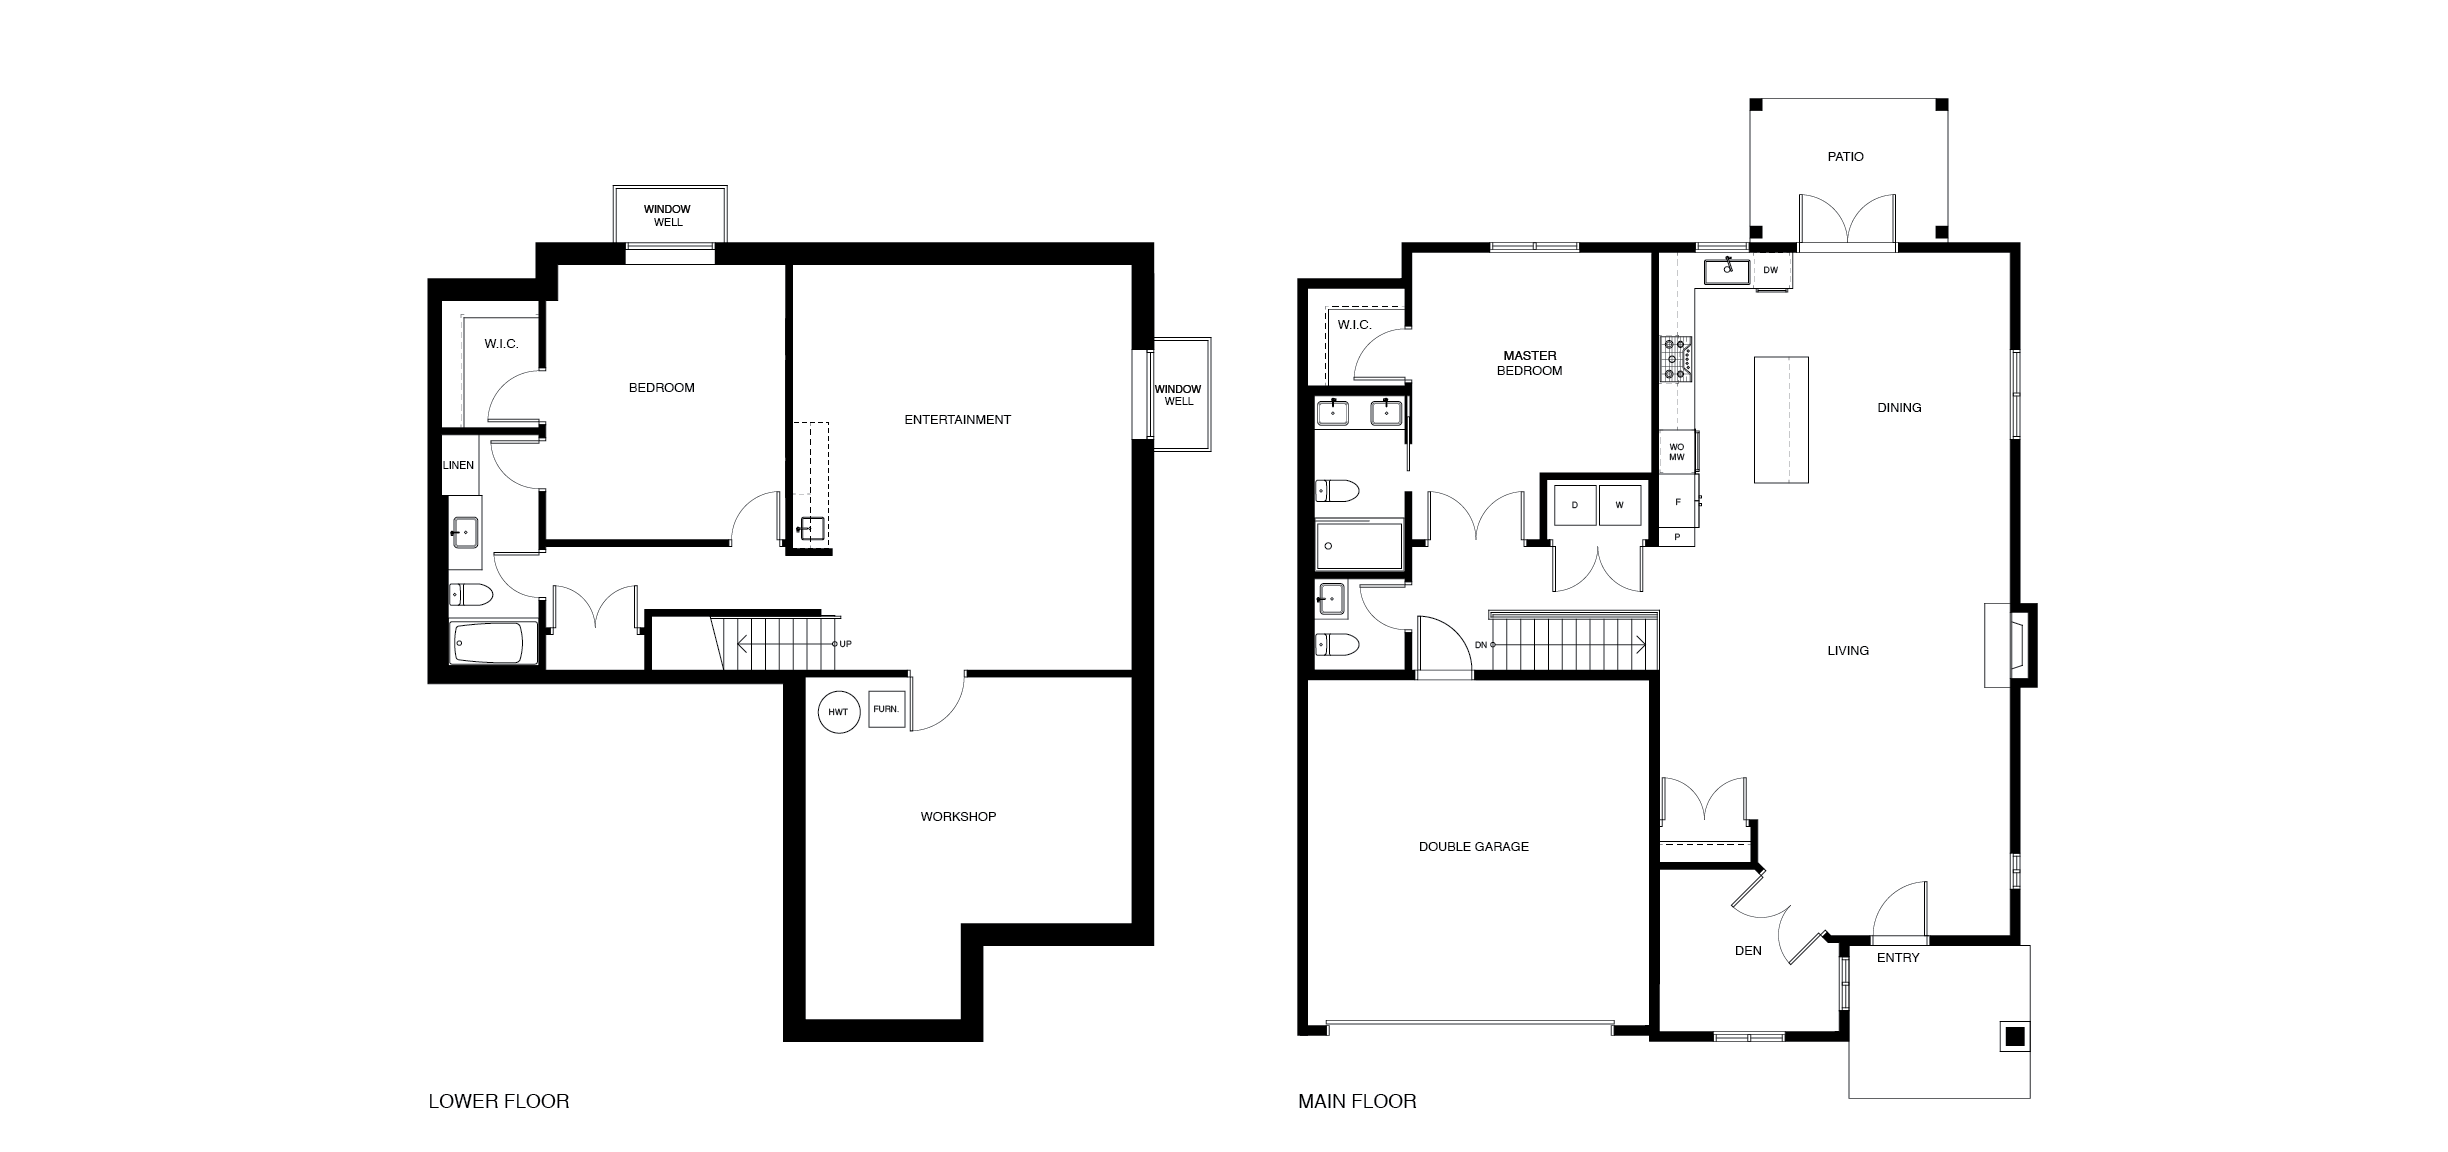 Floorplan - Unit D